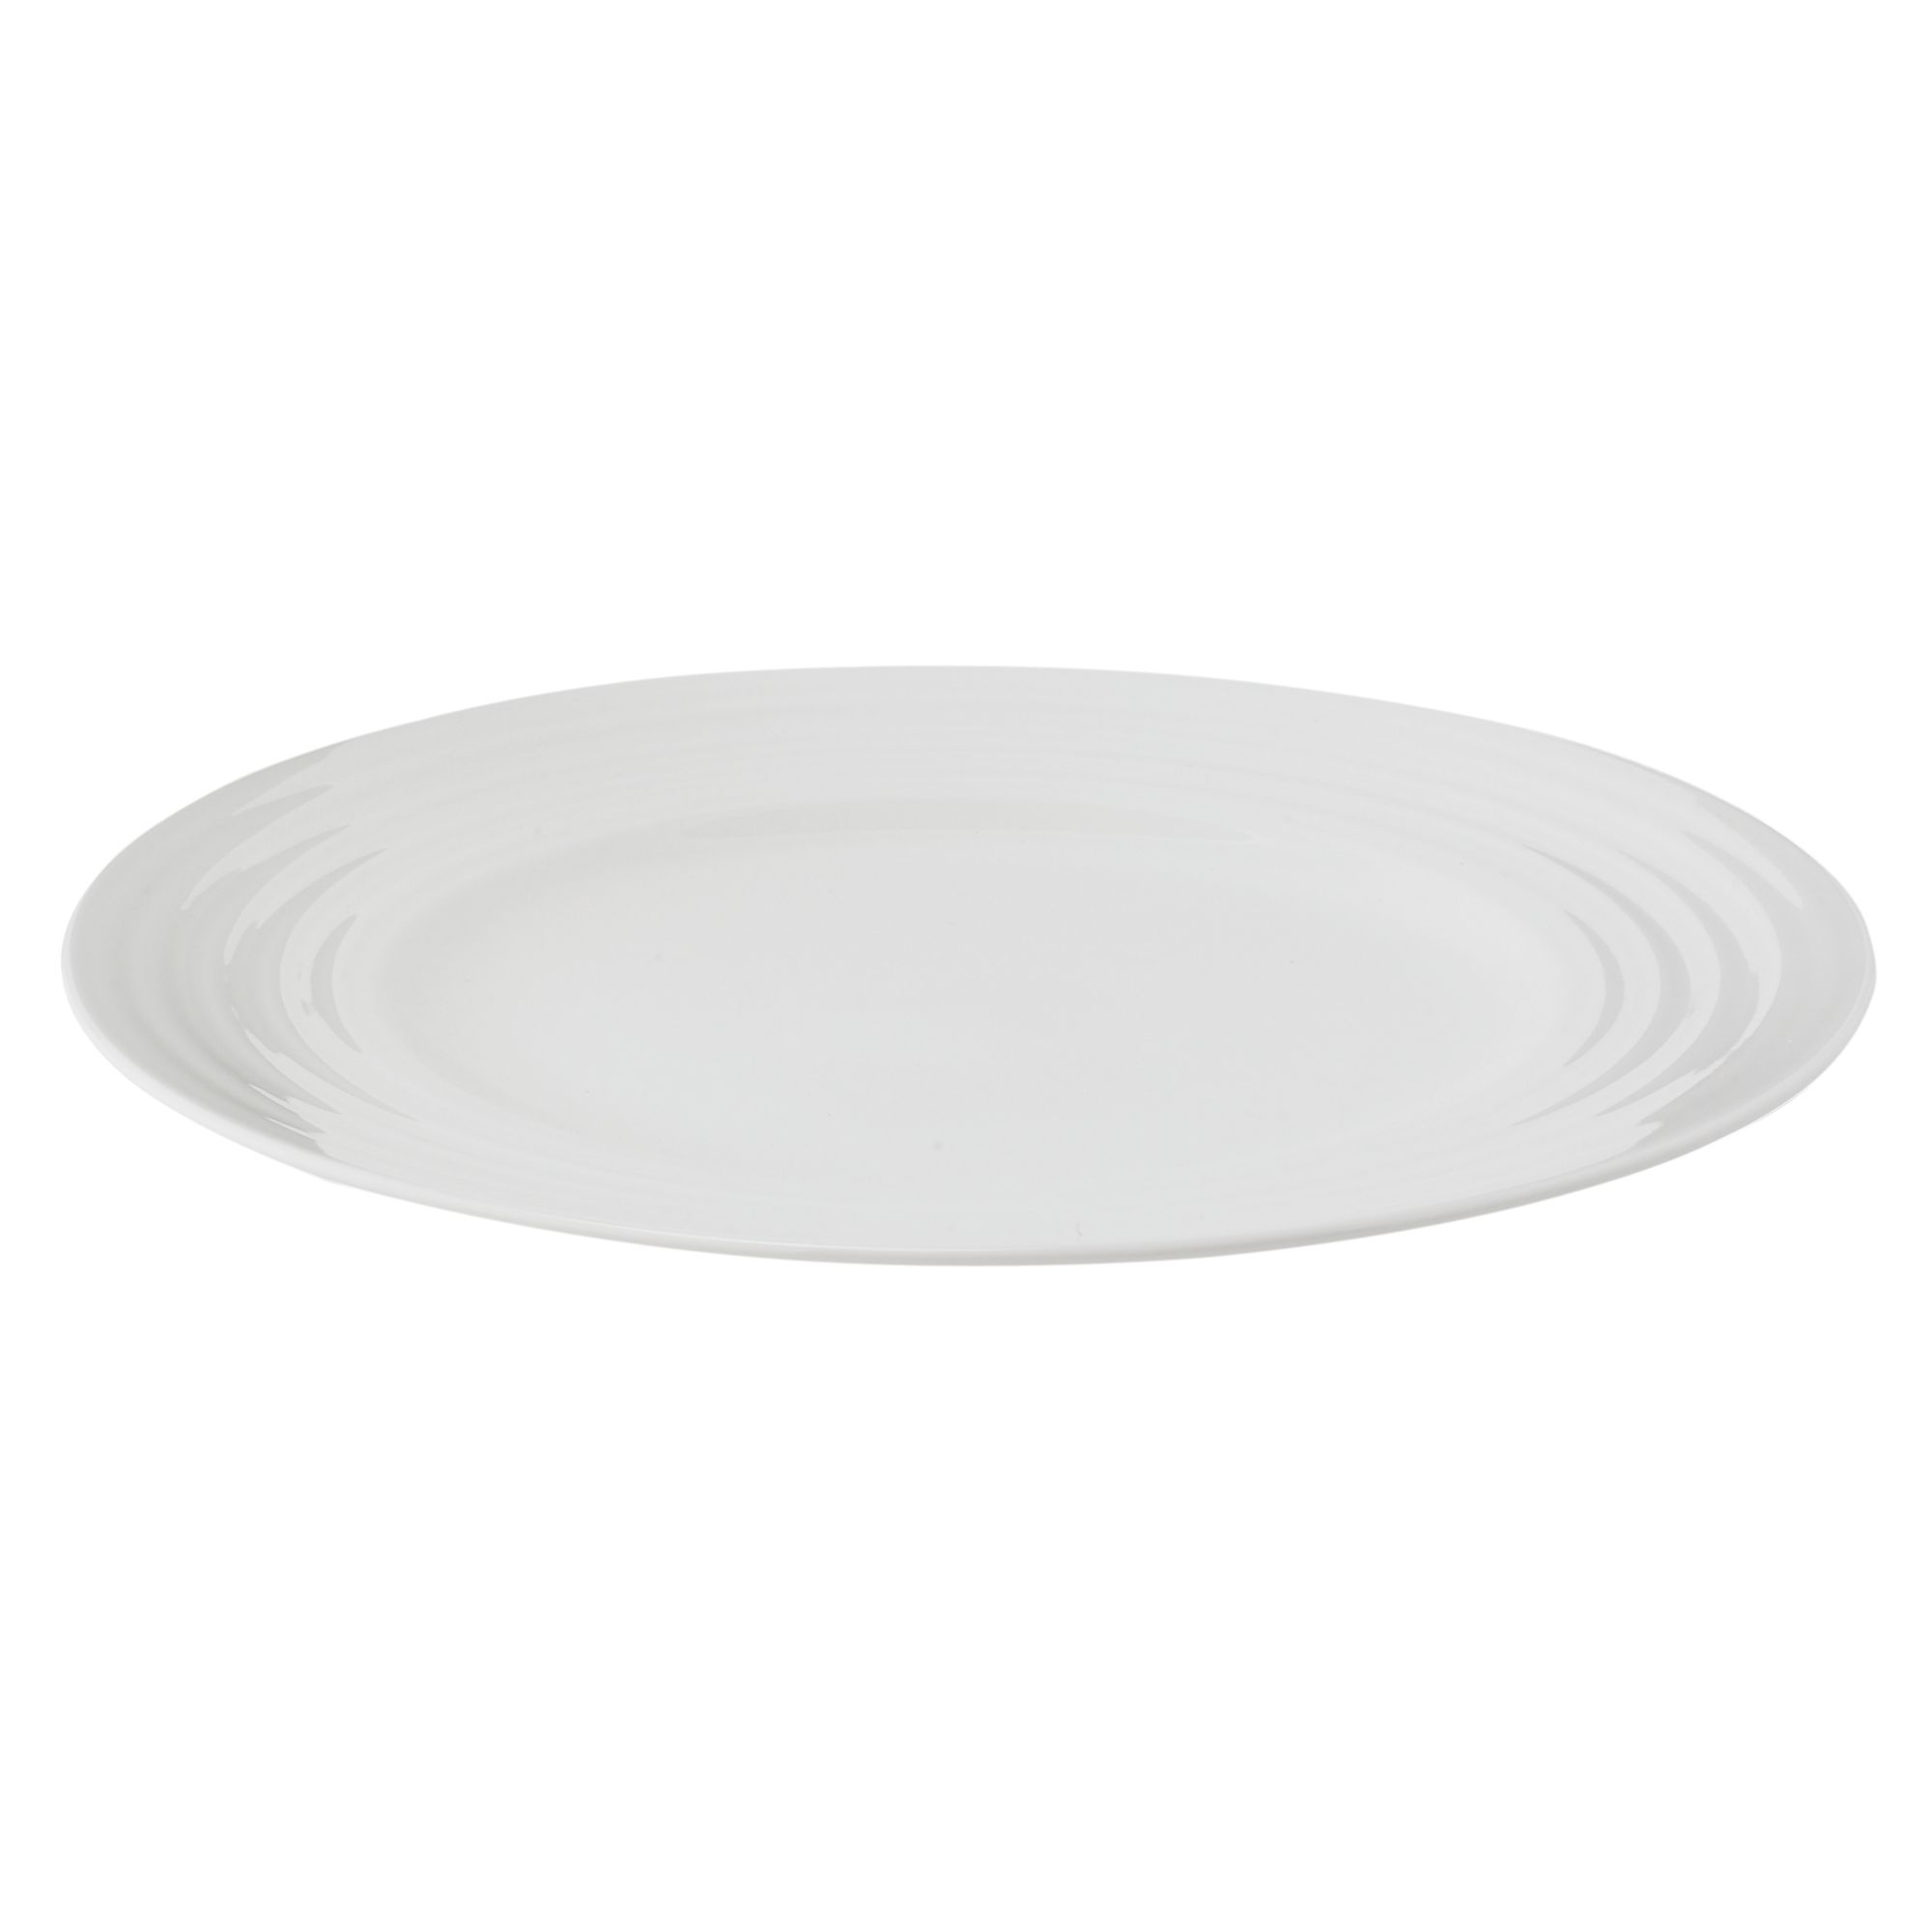 RIDGED SOHO BONE CHINA SIDE PLATE